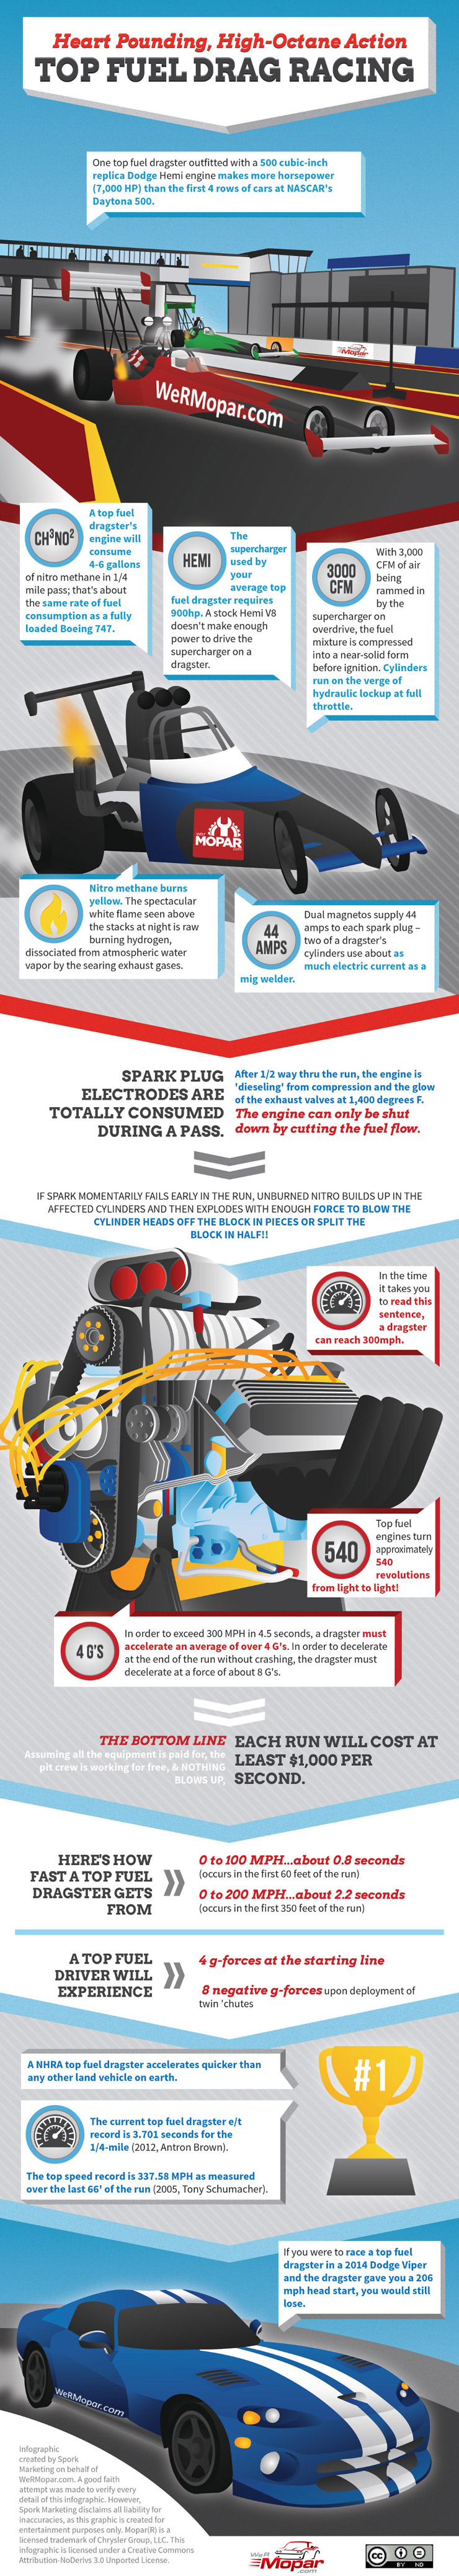 Top Fuel Dragster Infographic